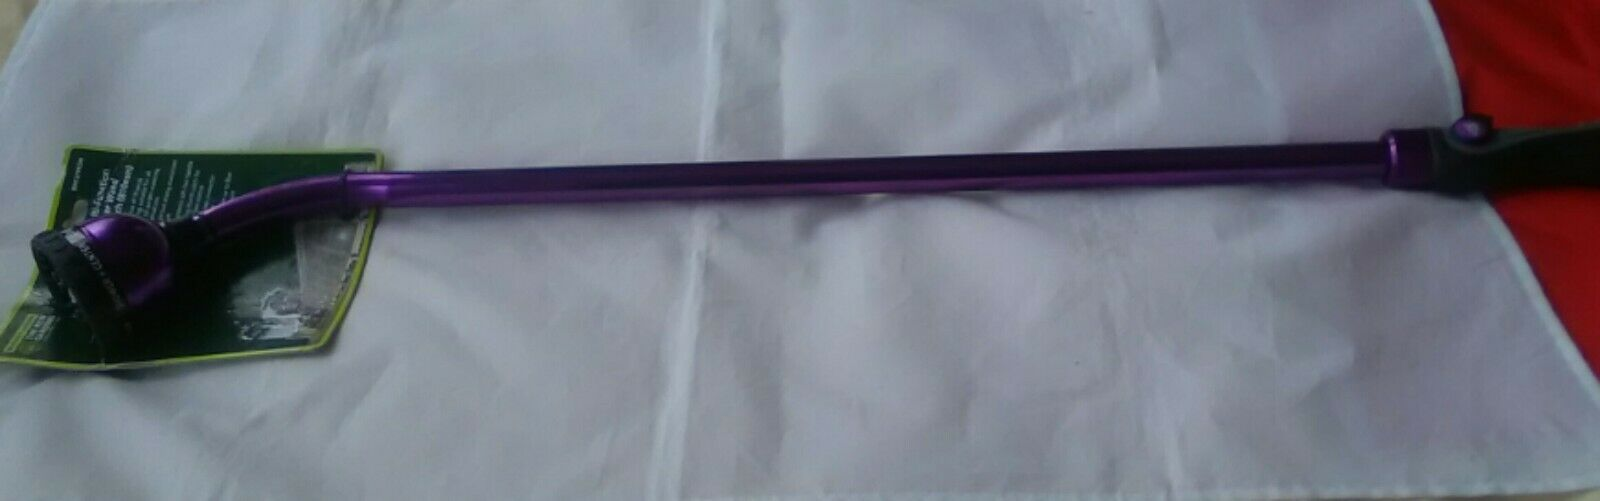 Spear & Jackson Multi Function Water Wand 32 inch/810mm The Kew Gardens